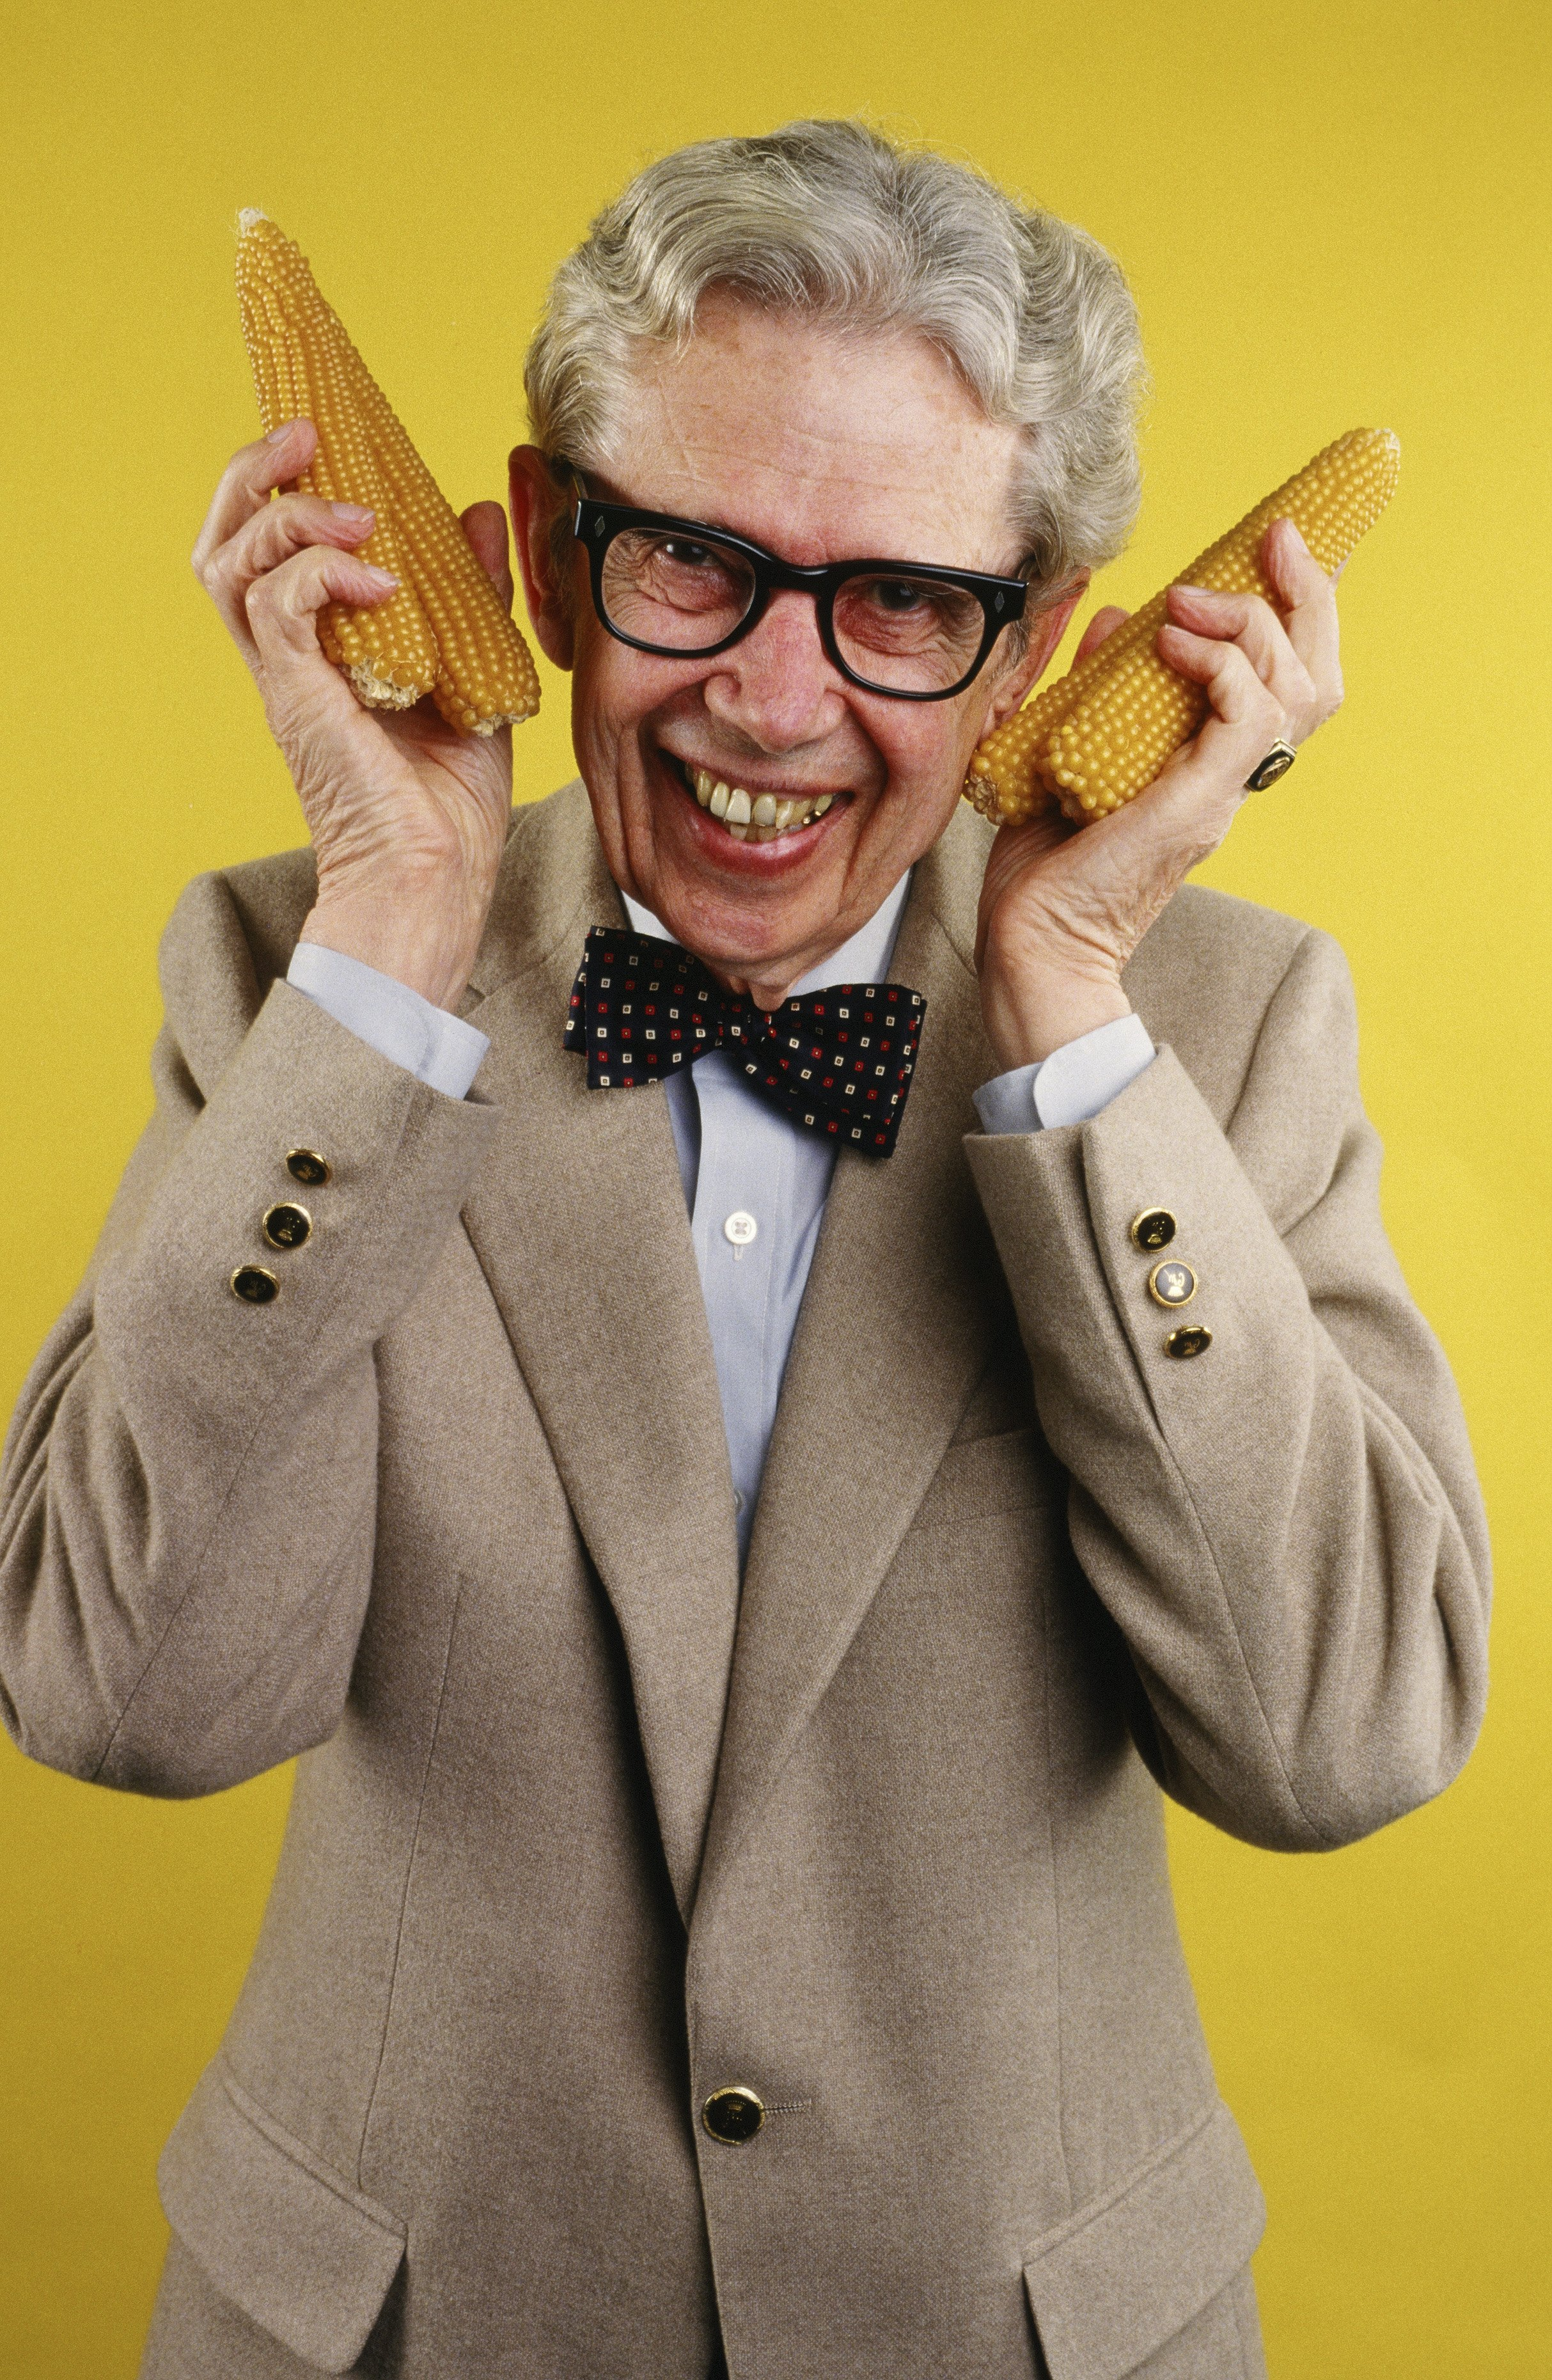 Popcorn King Orville Redenbacher playfully poses during a 1986 Los Angeles, California portrait session.